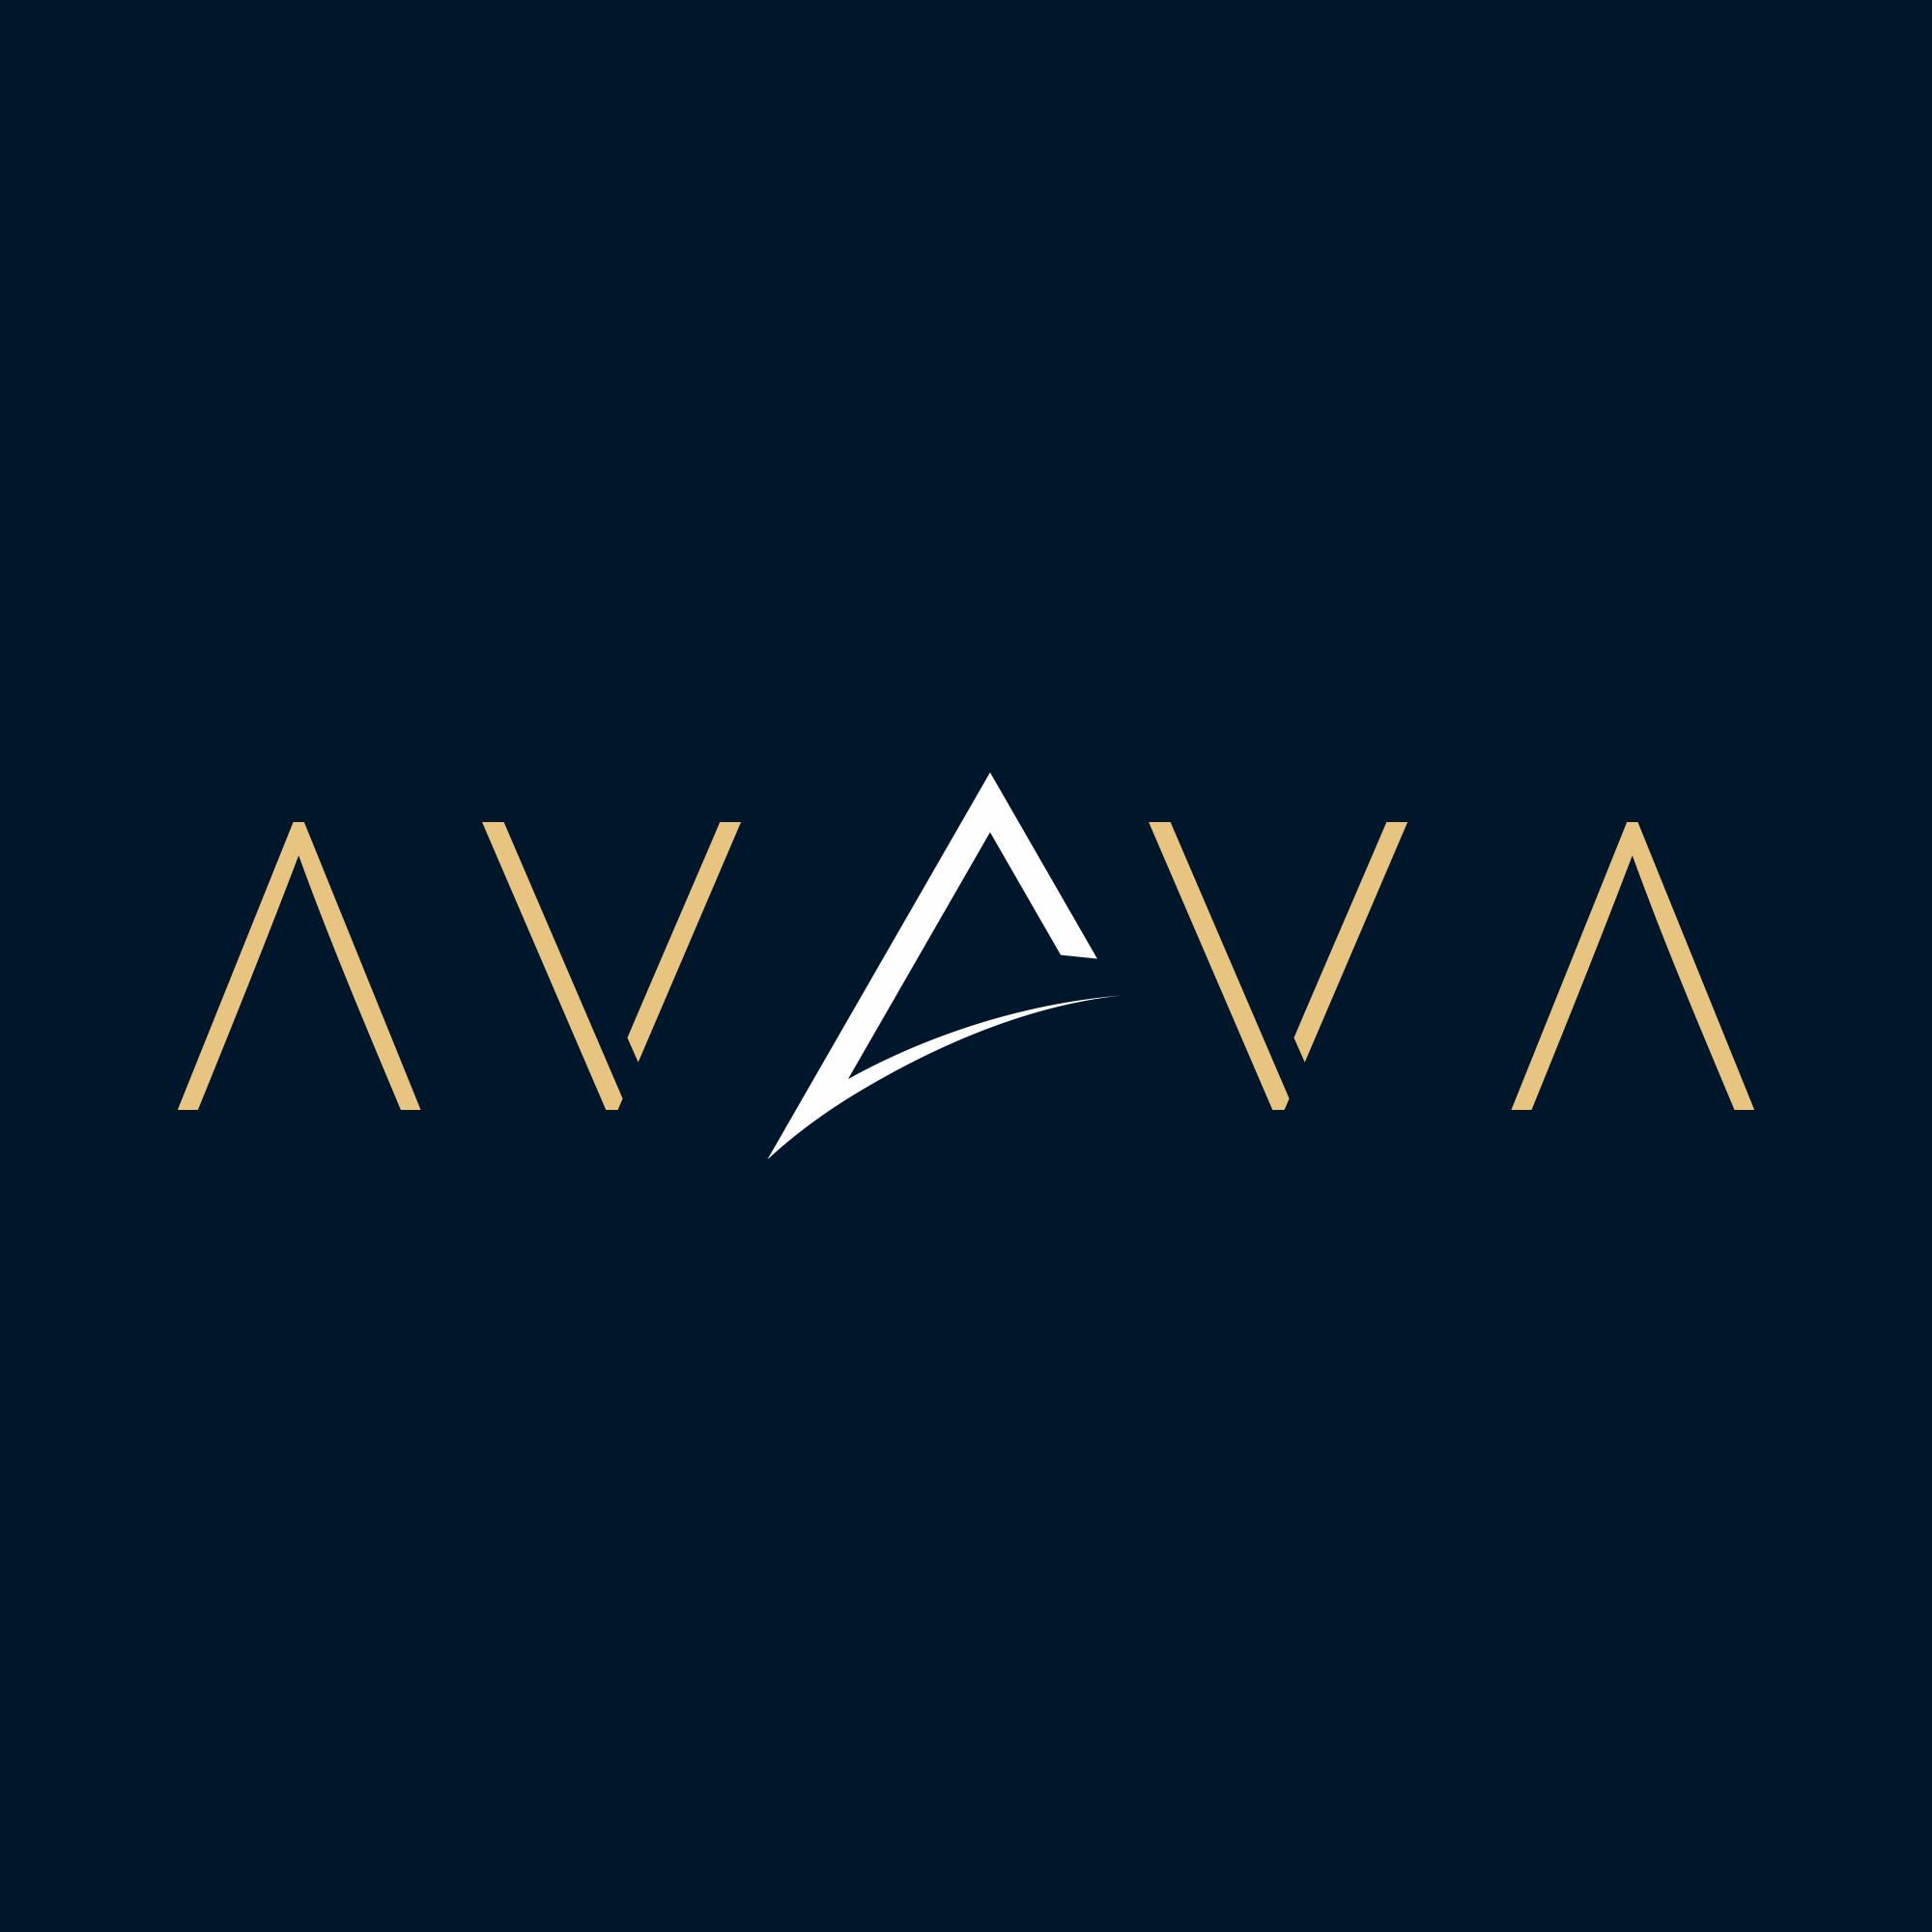 AVAVA (3).png